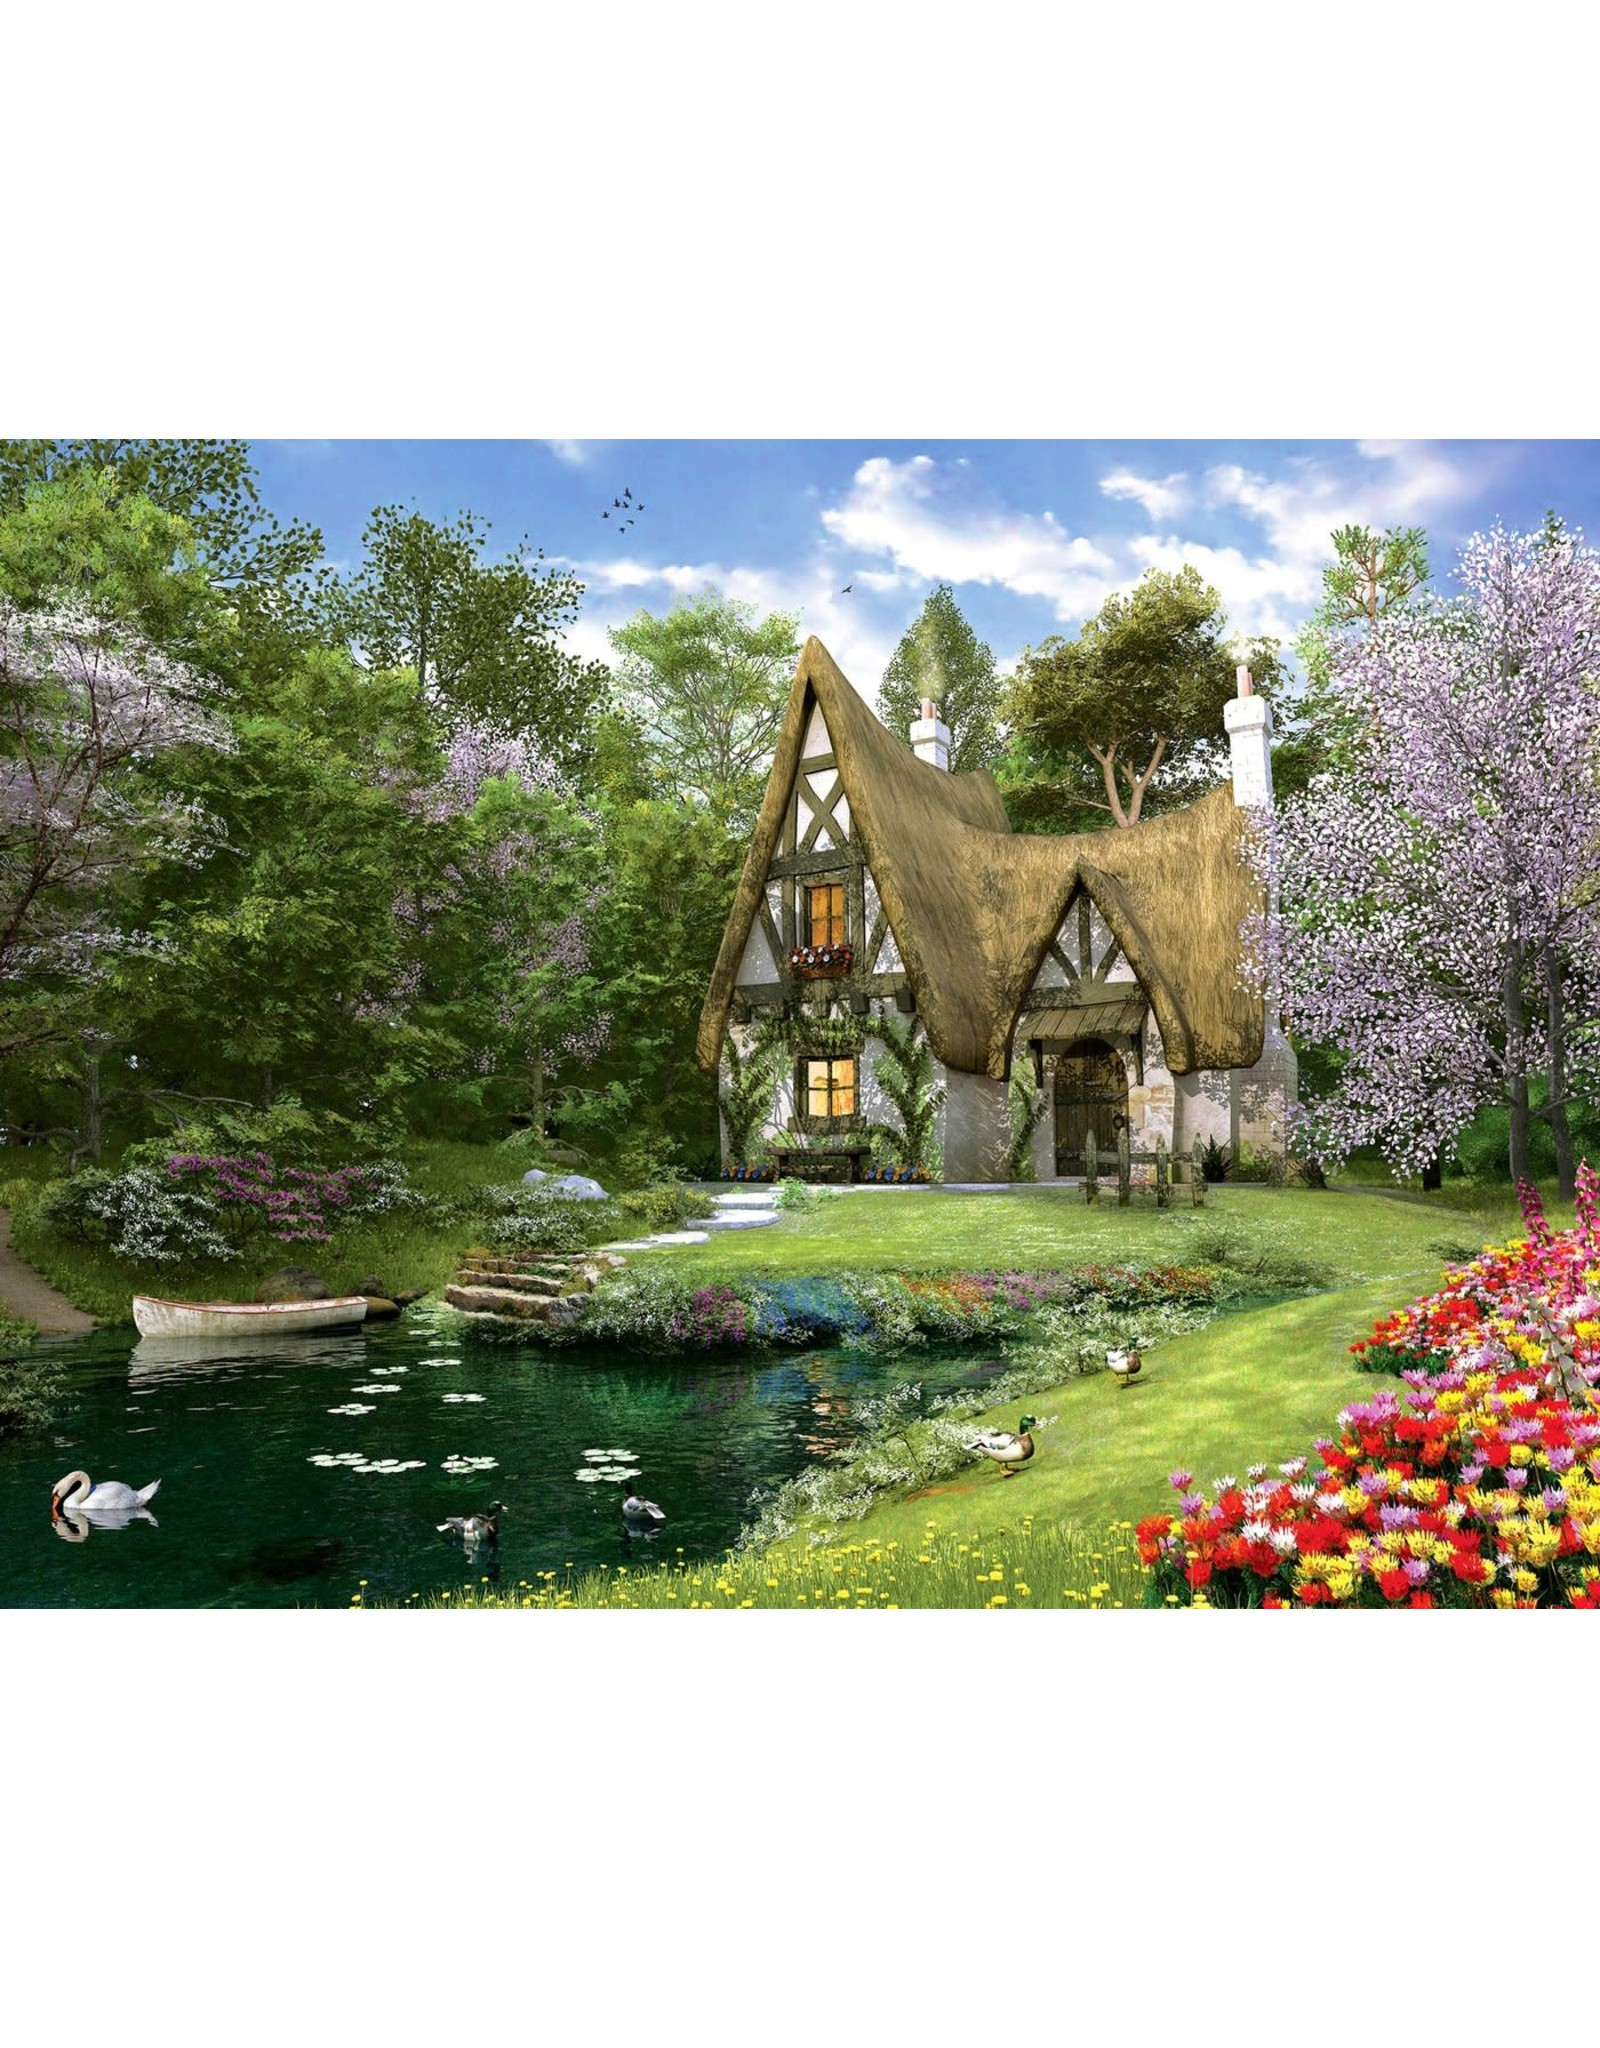 Anatolian 3000PC PUZZLE - SPRING LAKE COTTAGE